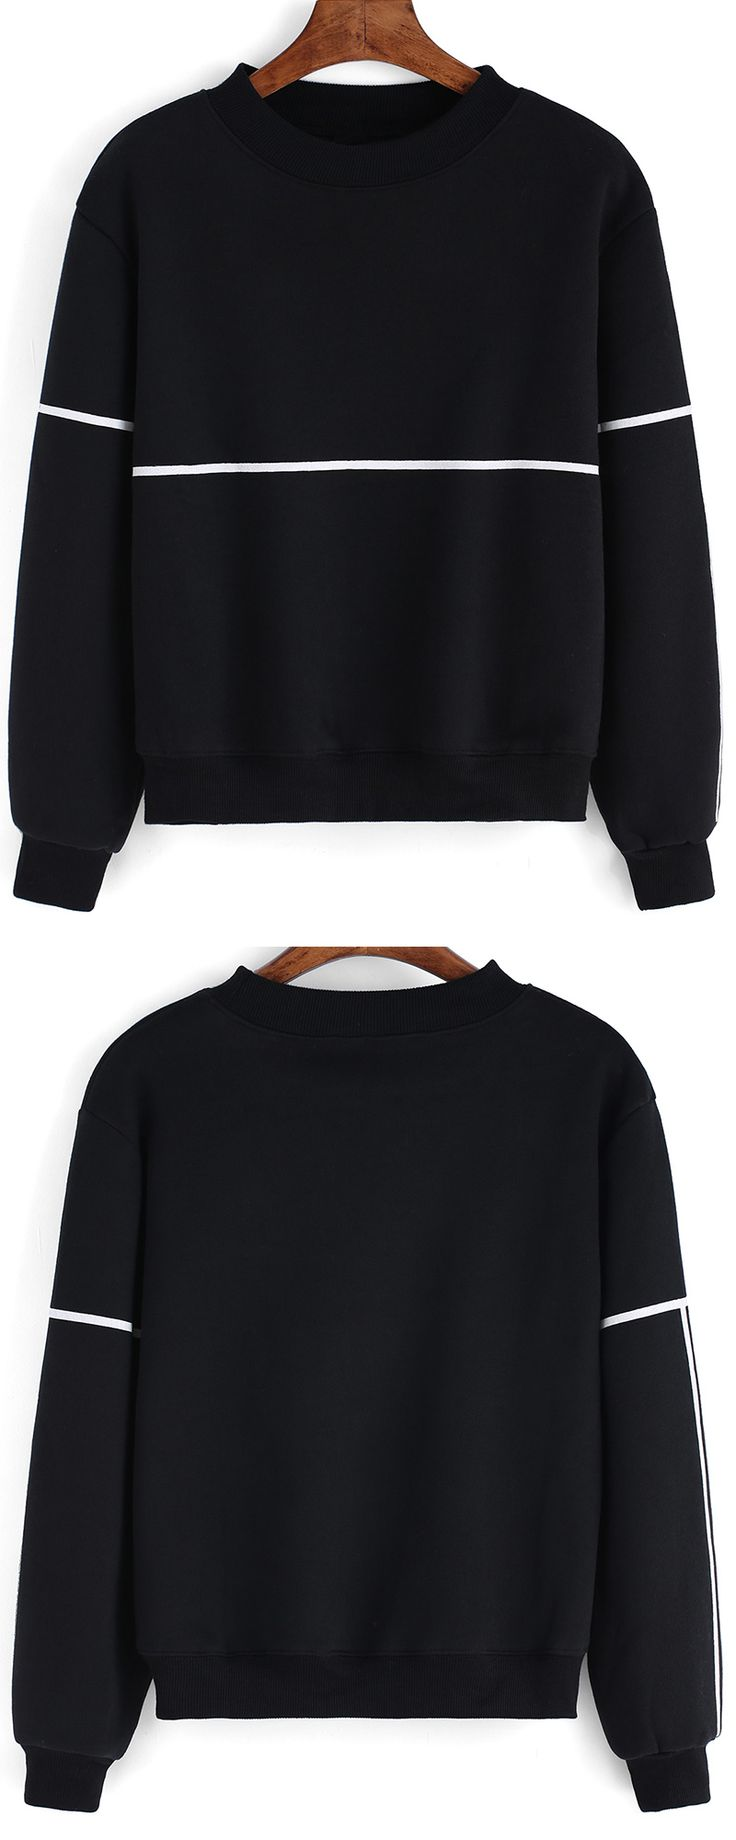 Striped Thicken Black Sweatshirt. Cotton material and round neck. Decent quality with $10.99 only.